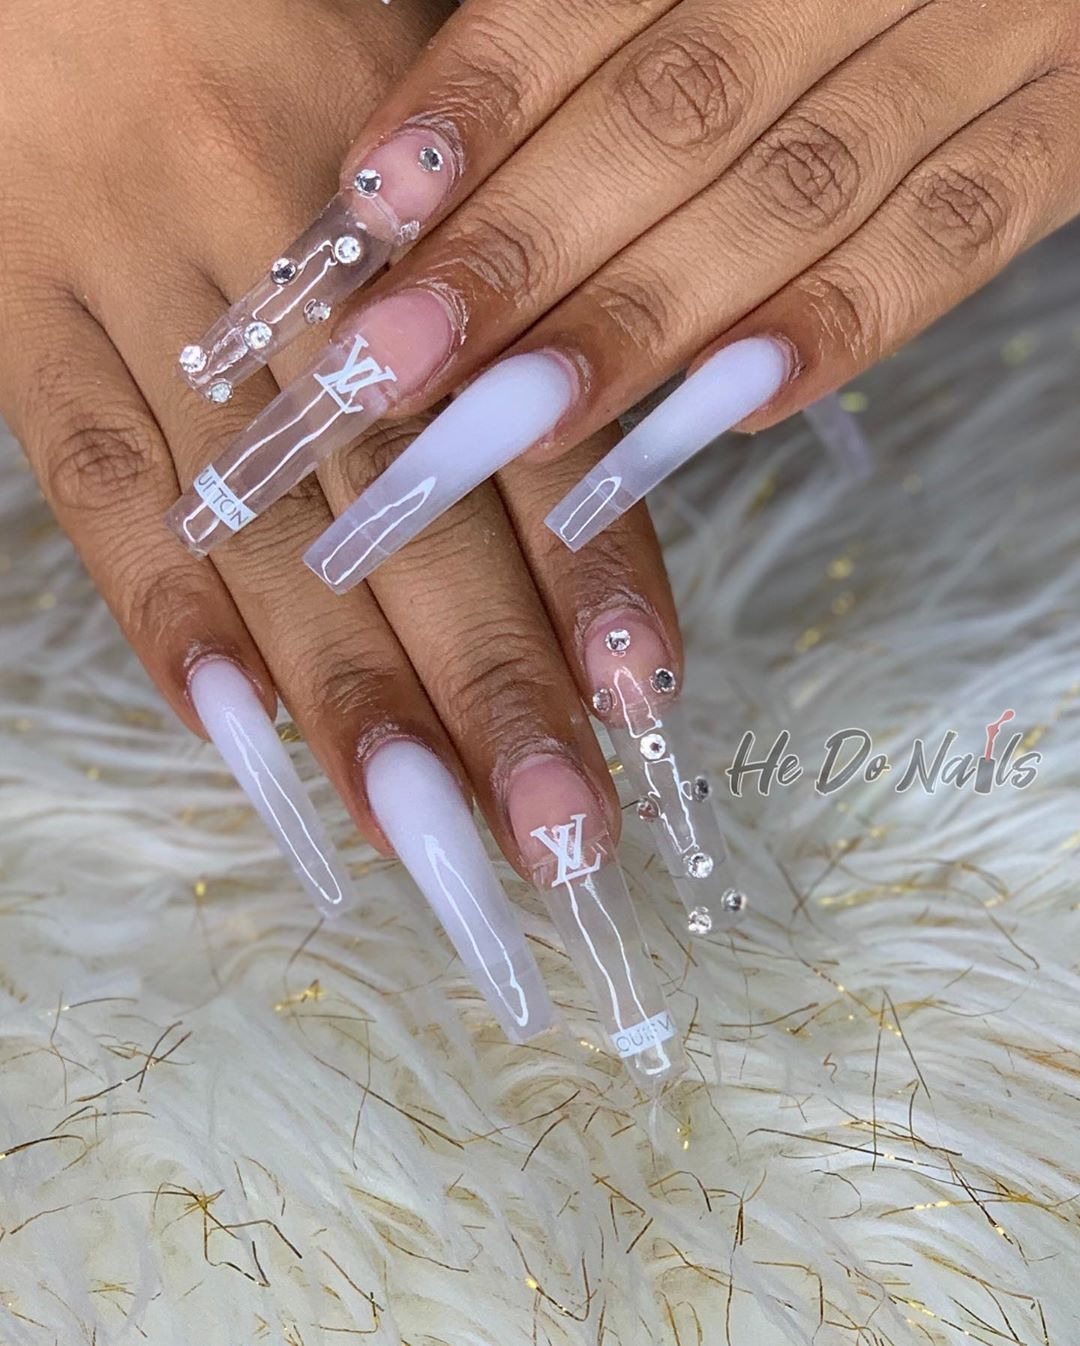 20 Dollar Deposit Required On Instagram Lengthy For My Sweet Thang Licensed In 2020 Long Acrylic Nails Coffin Bling Acrylic Nails Acrylic Nail Designs Coffin